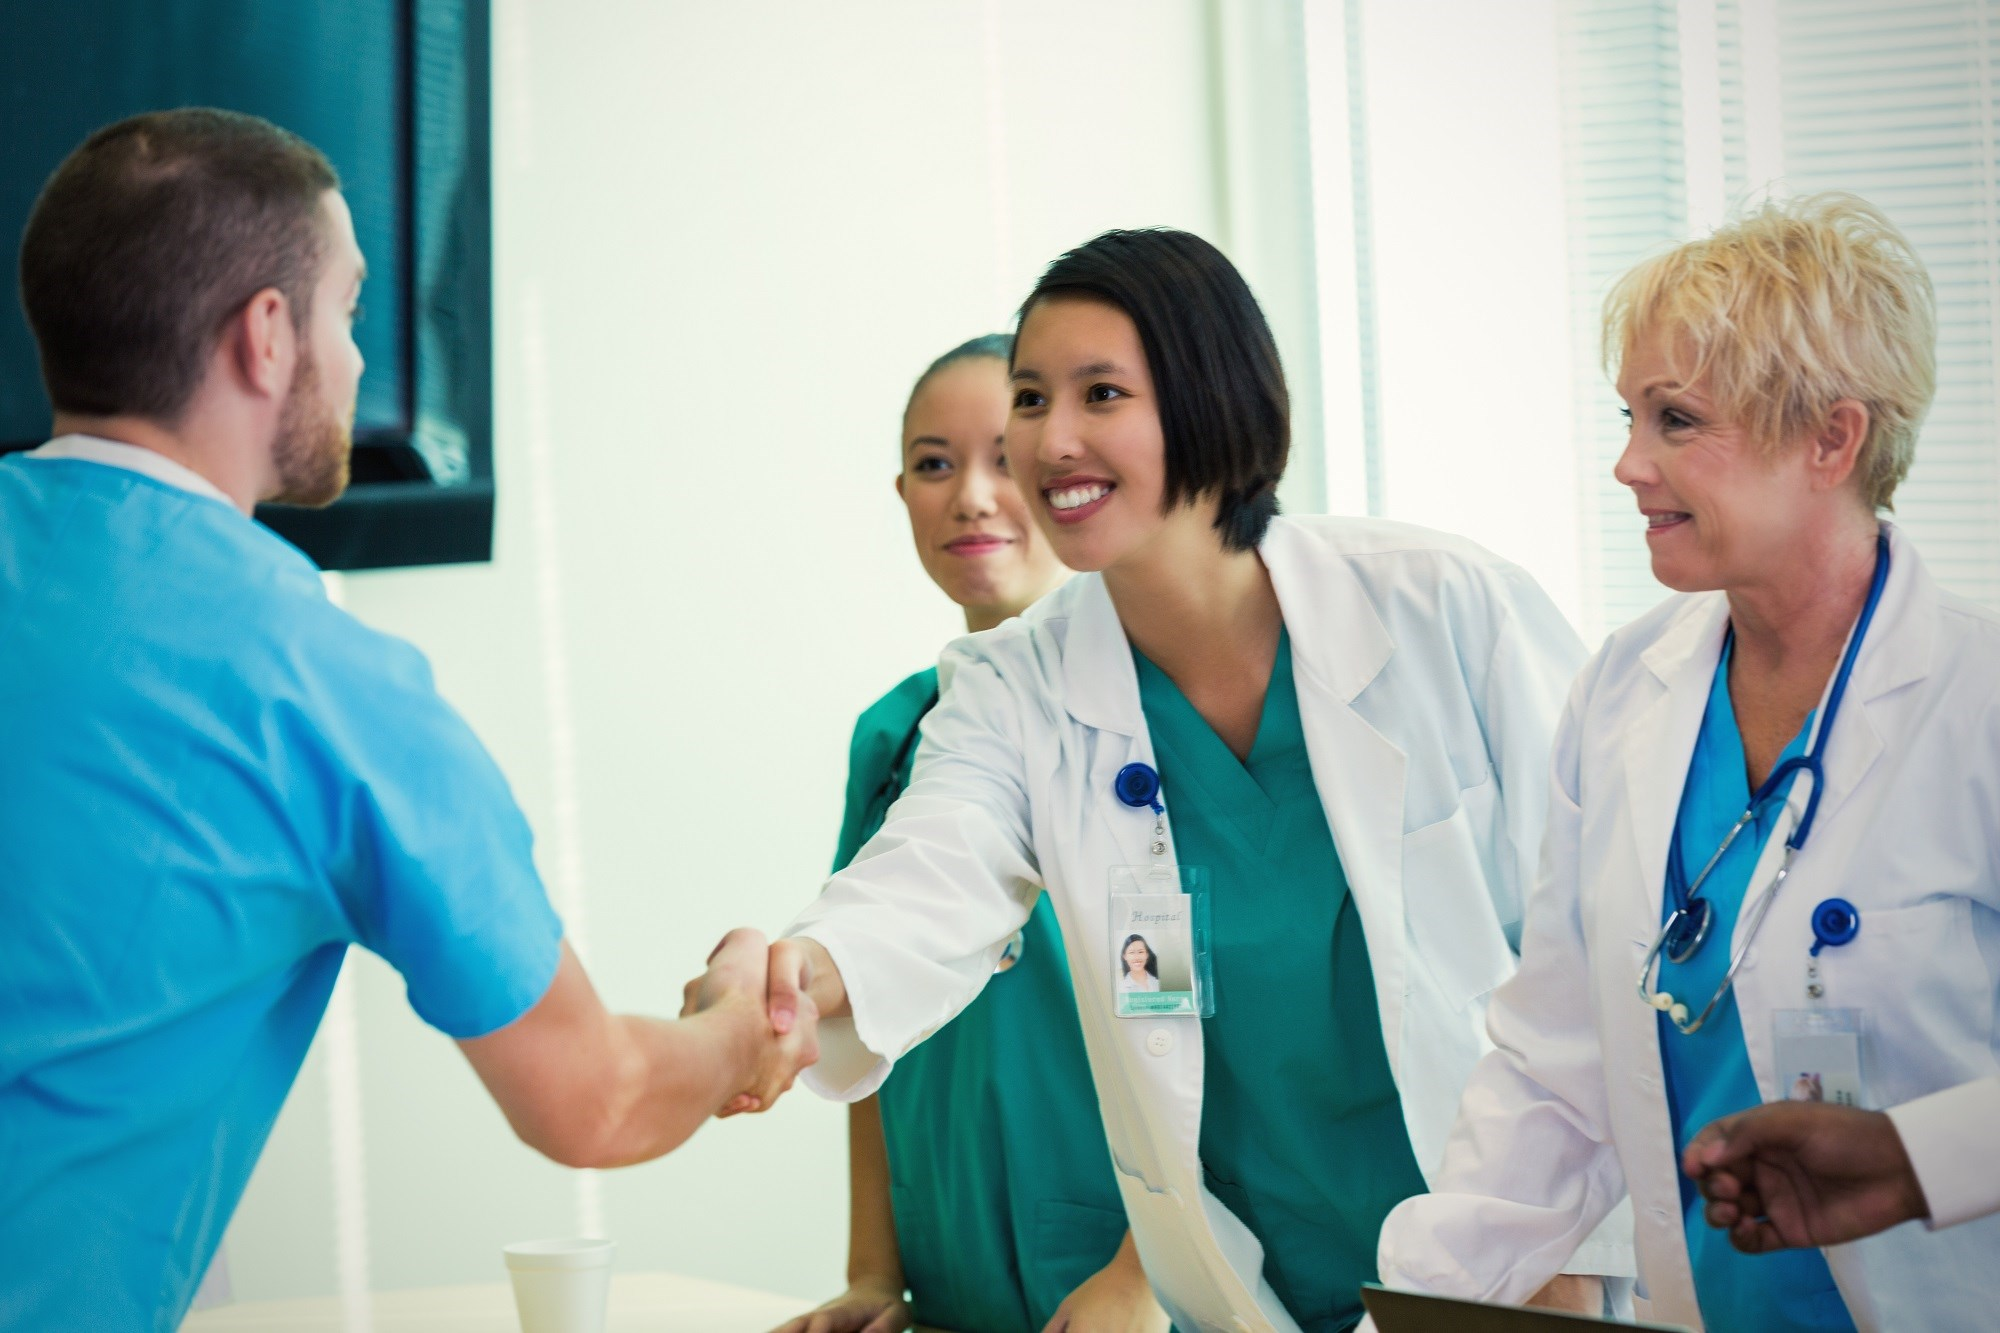 In preparing to interview to hire a new physician, practices must understand their own cultures.